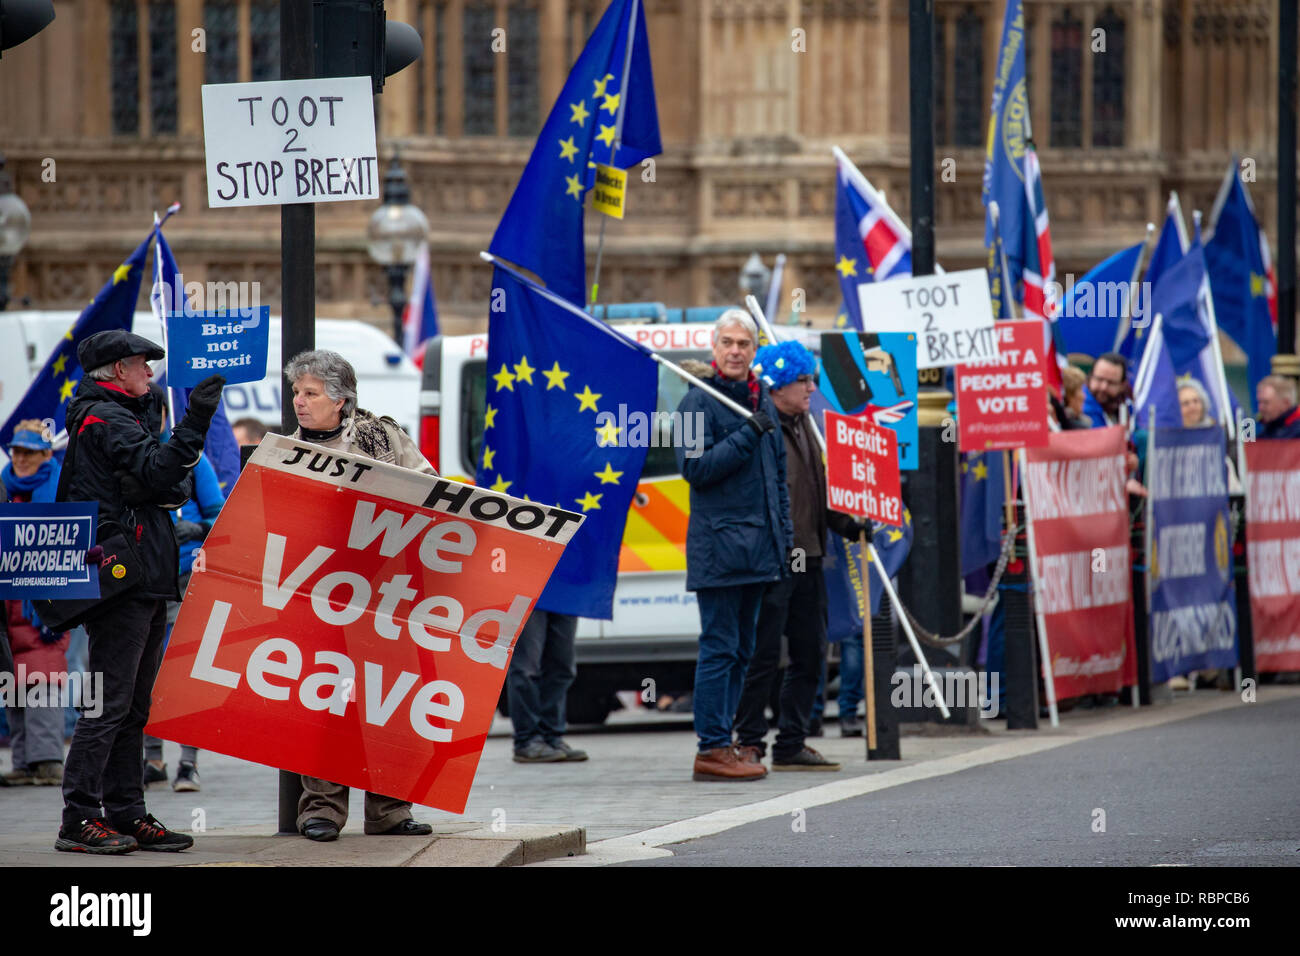 Vote Leave and Remain supporters outside Parliament in Westminster. Britain is scheduled to exit the EU on March 29th. Britain leaving the EU. - Stock Image